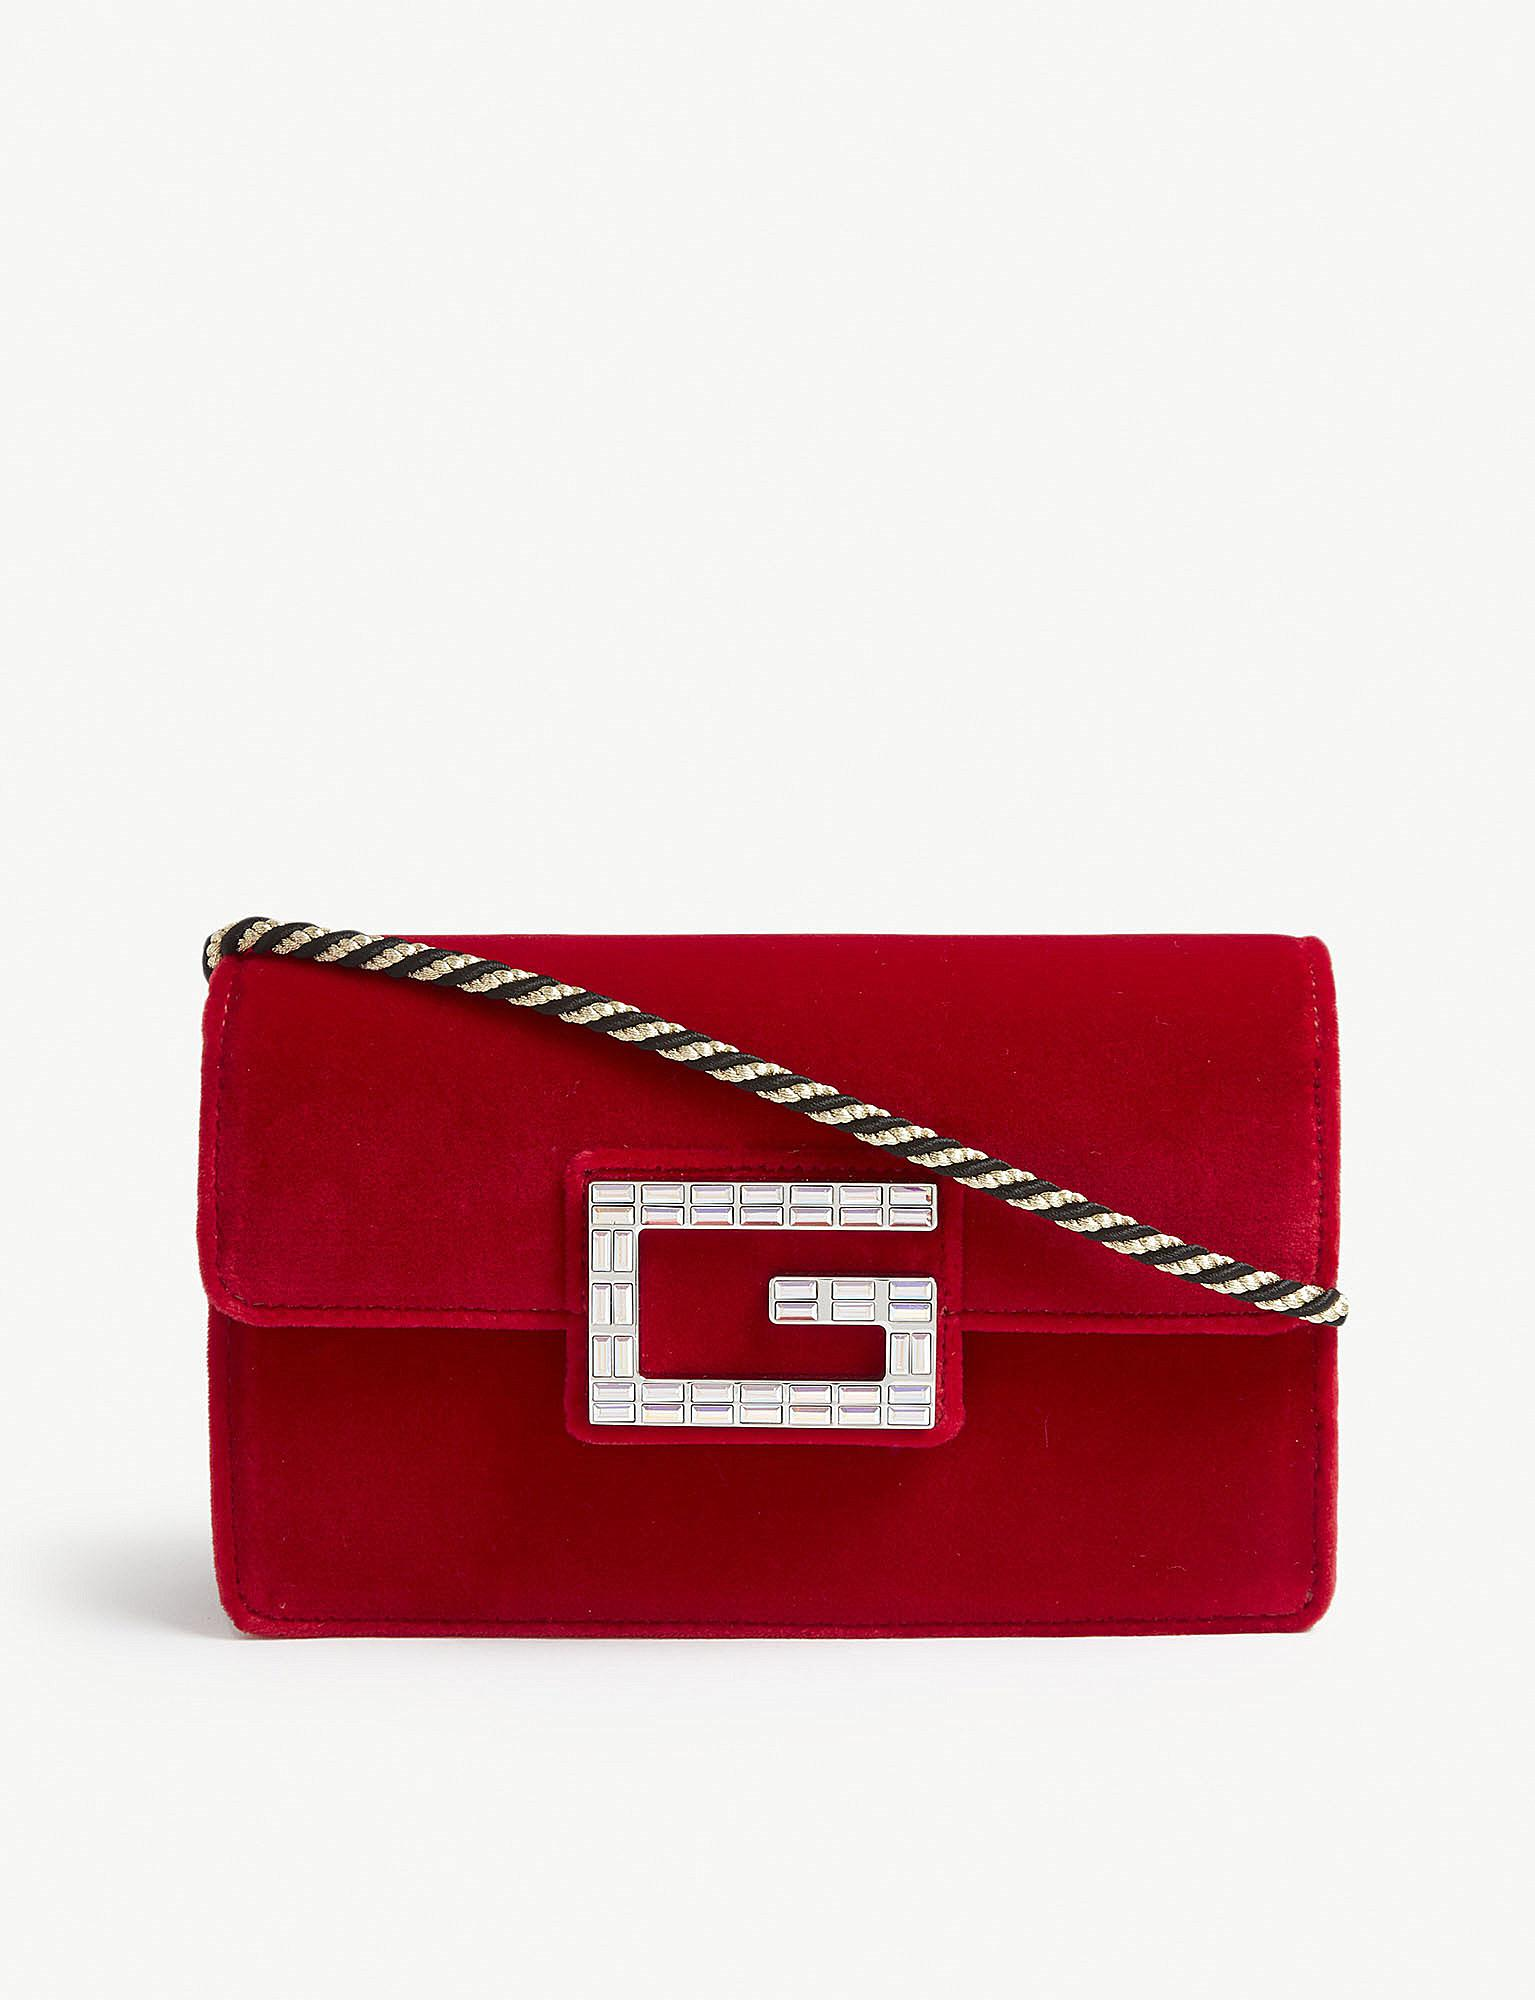 75f2189b5ee3 Gucci Broadway Crystal G Velvet Cross Body Bag in Red - Save 7% - Lyst